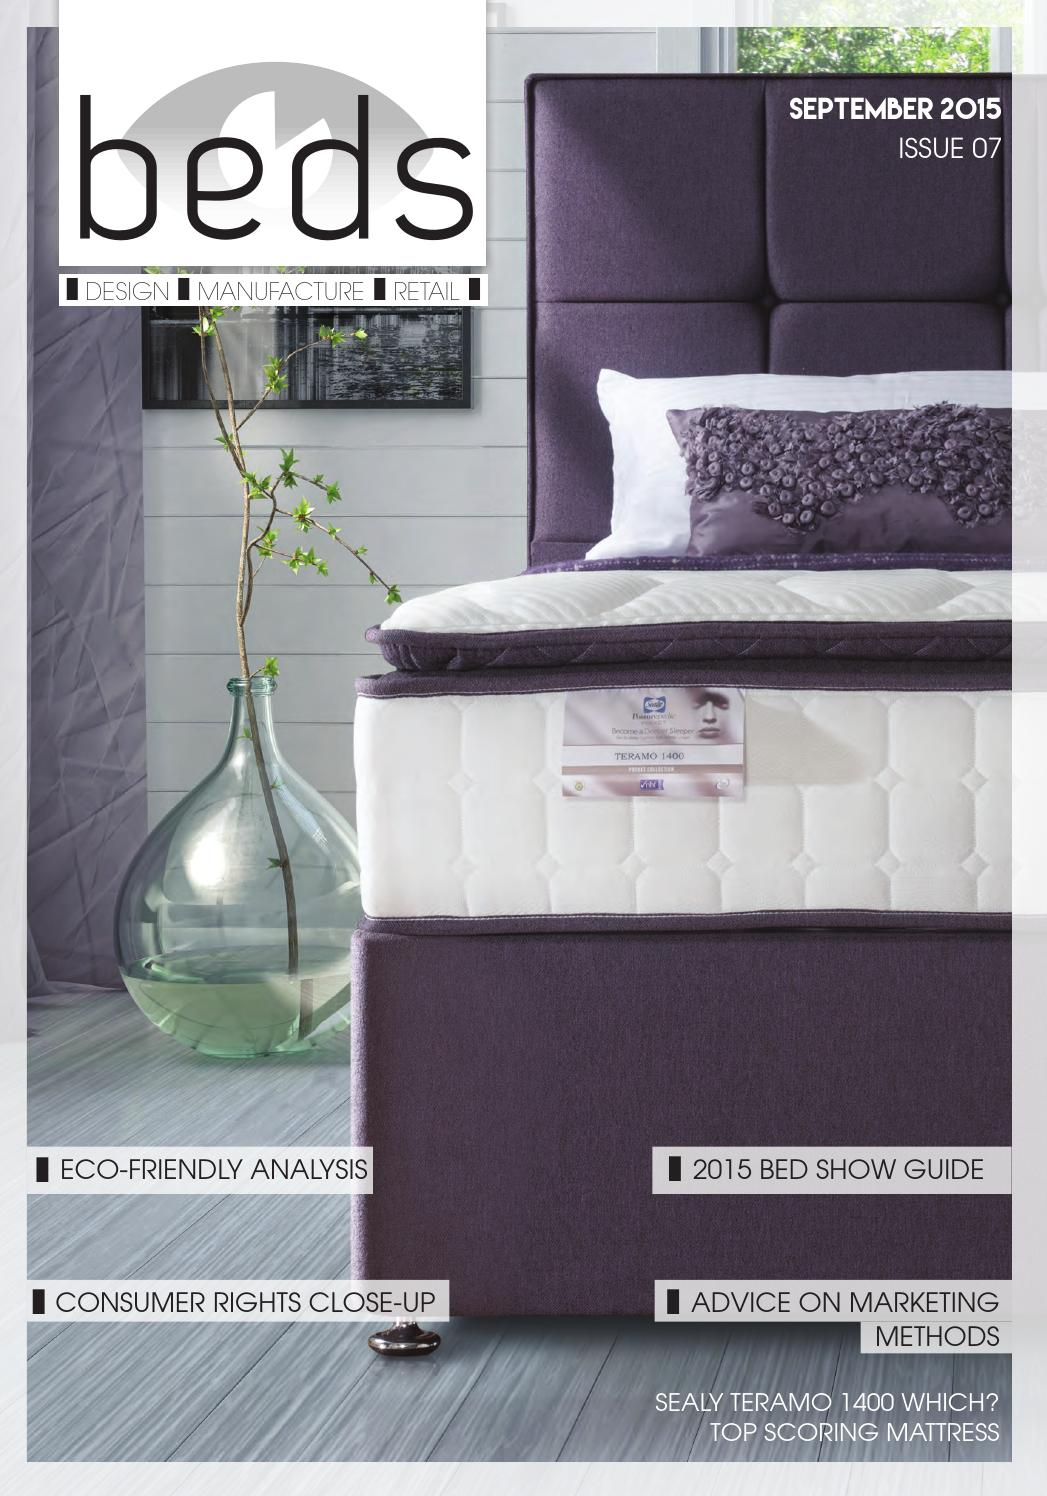 Wondrous Beds Issue 07 September 2015 By Cabinet Maker Issuu Beatyapartments Chair Design Images Beatyapartmentscom